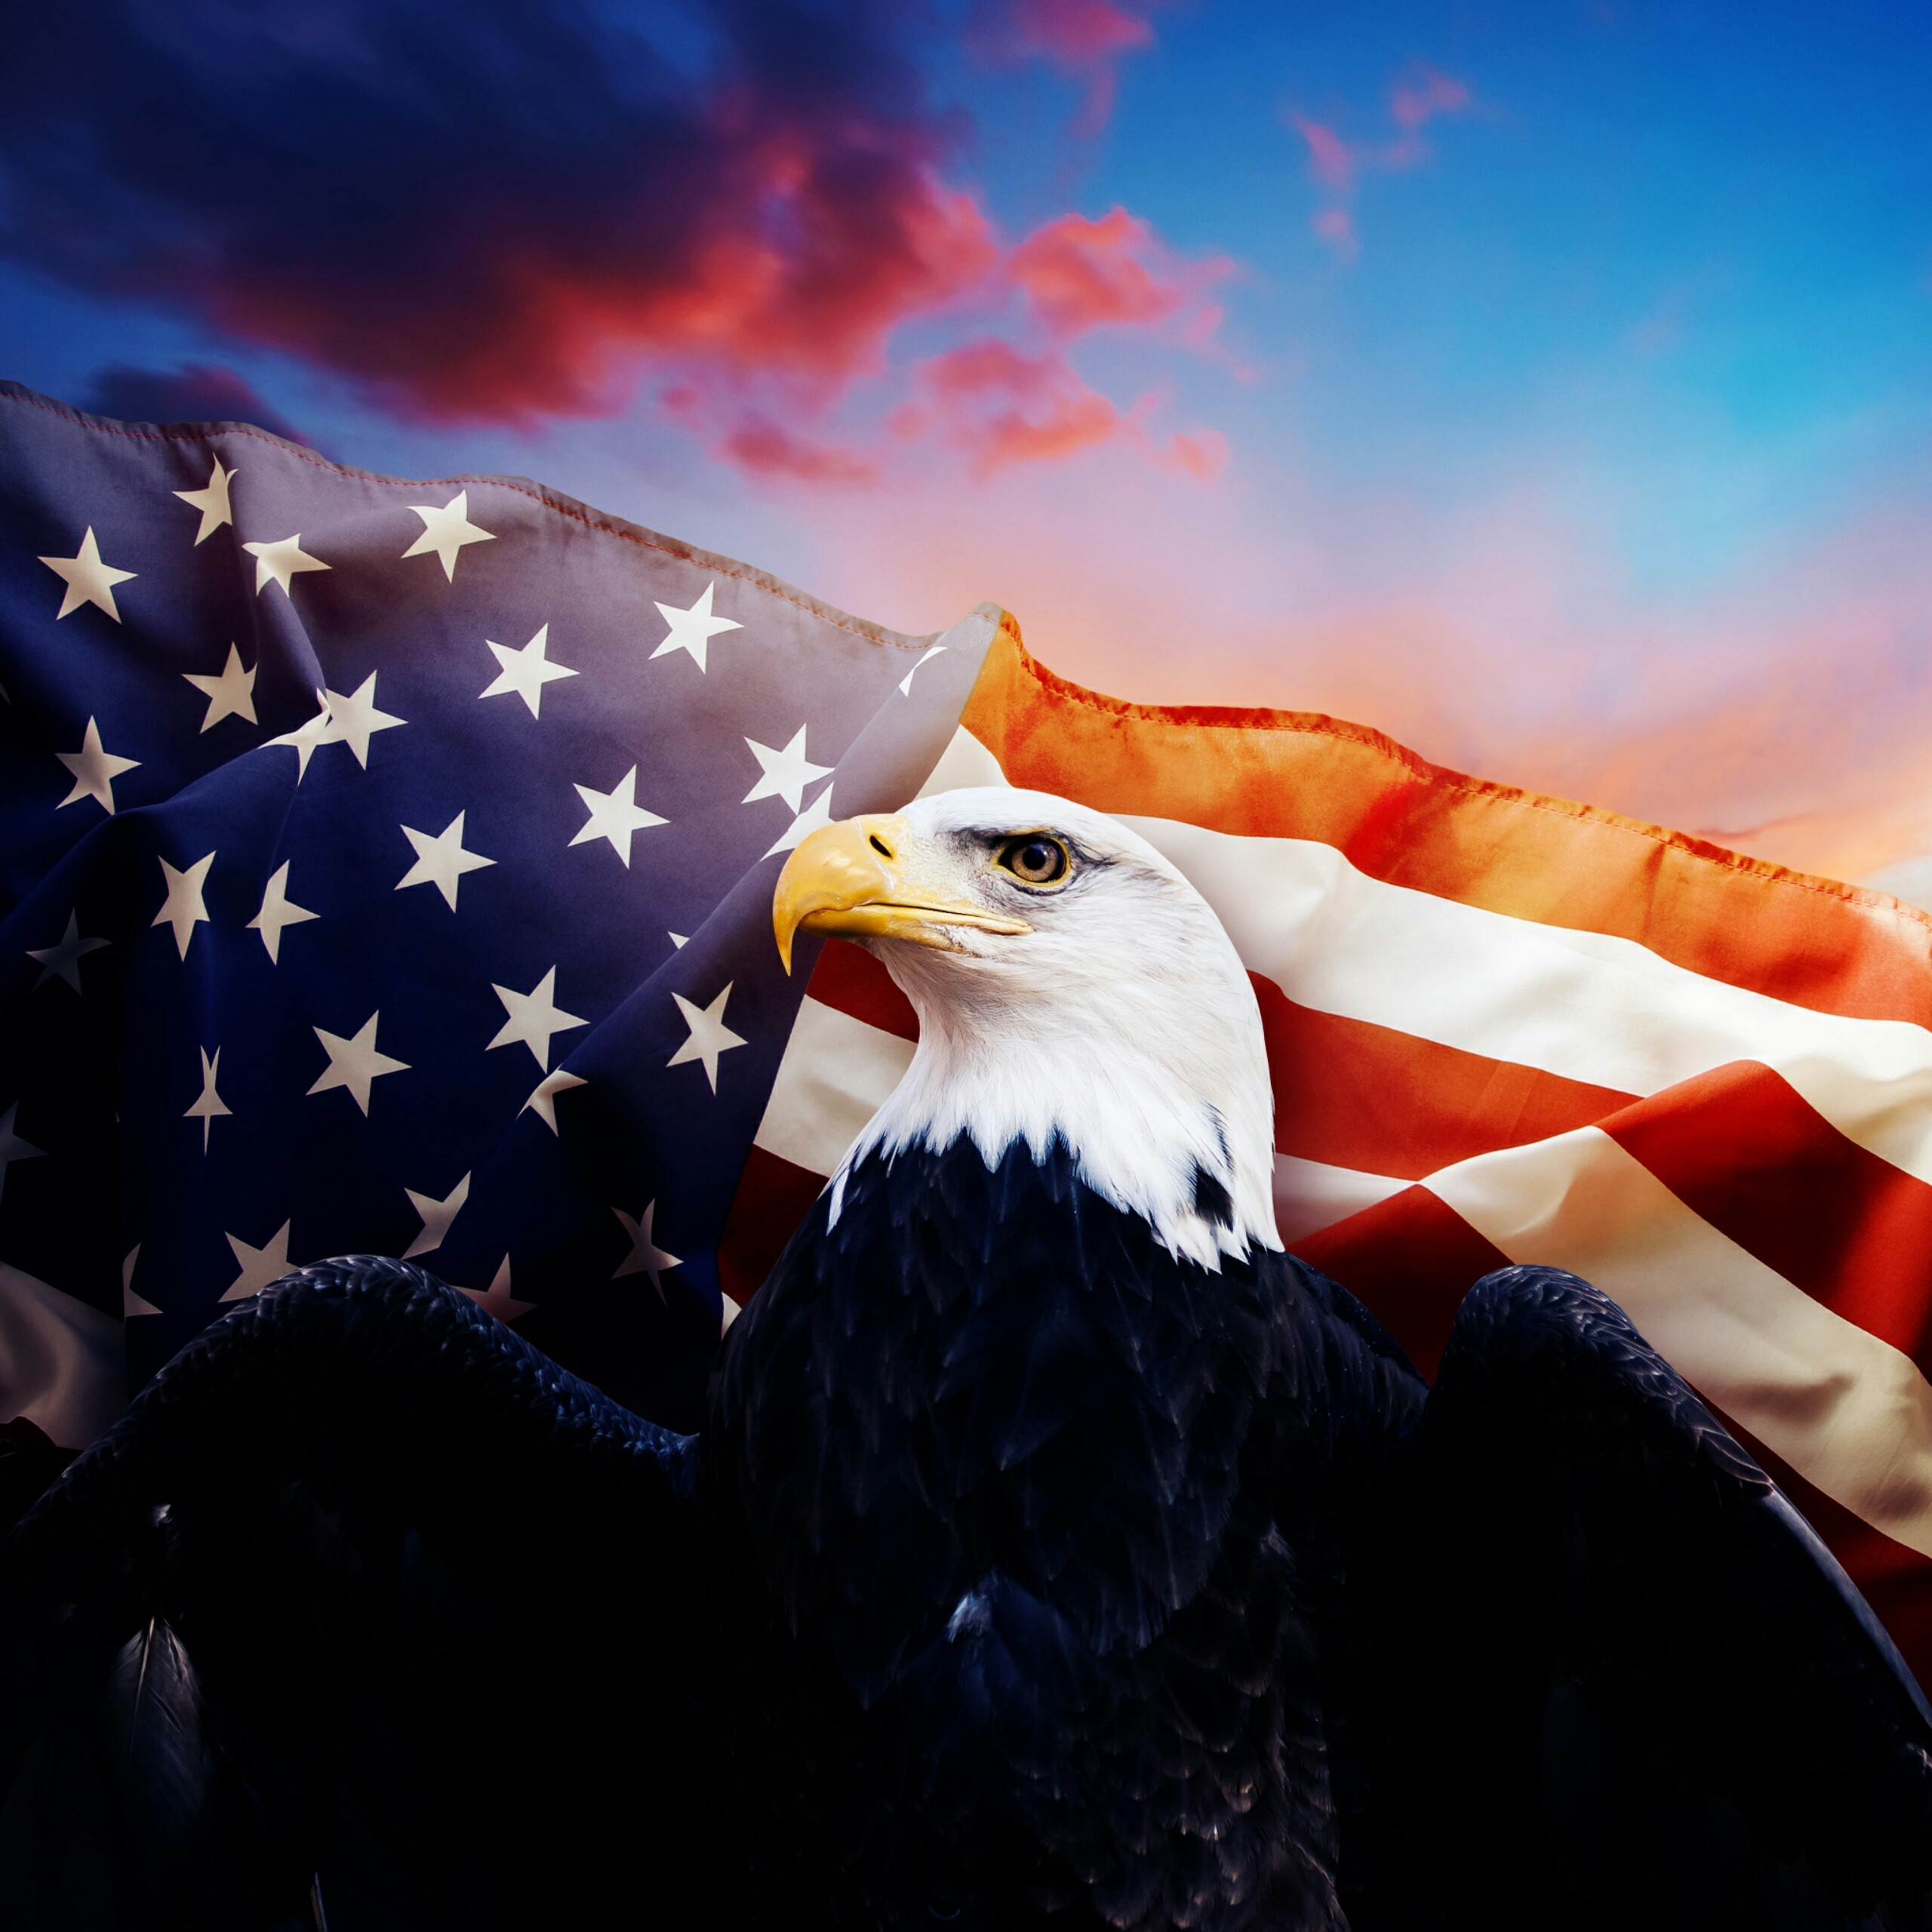 American eagle wallpaper iphone